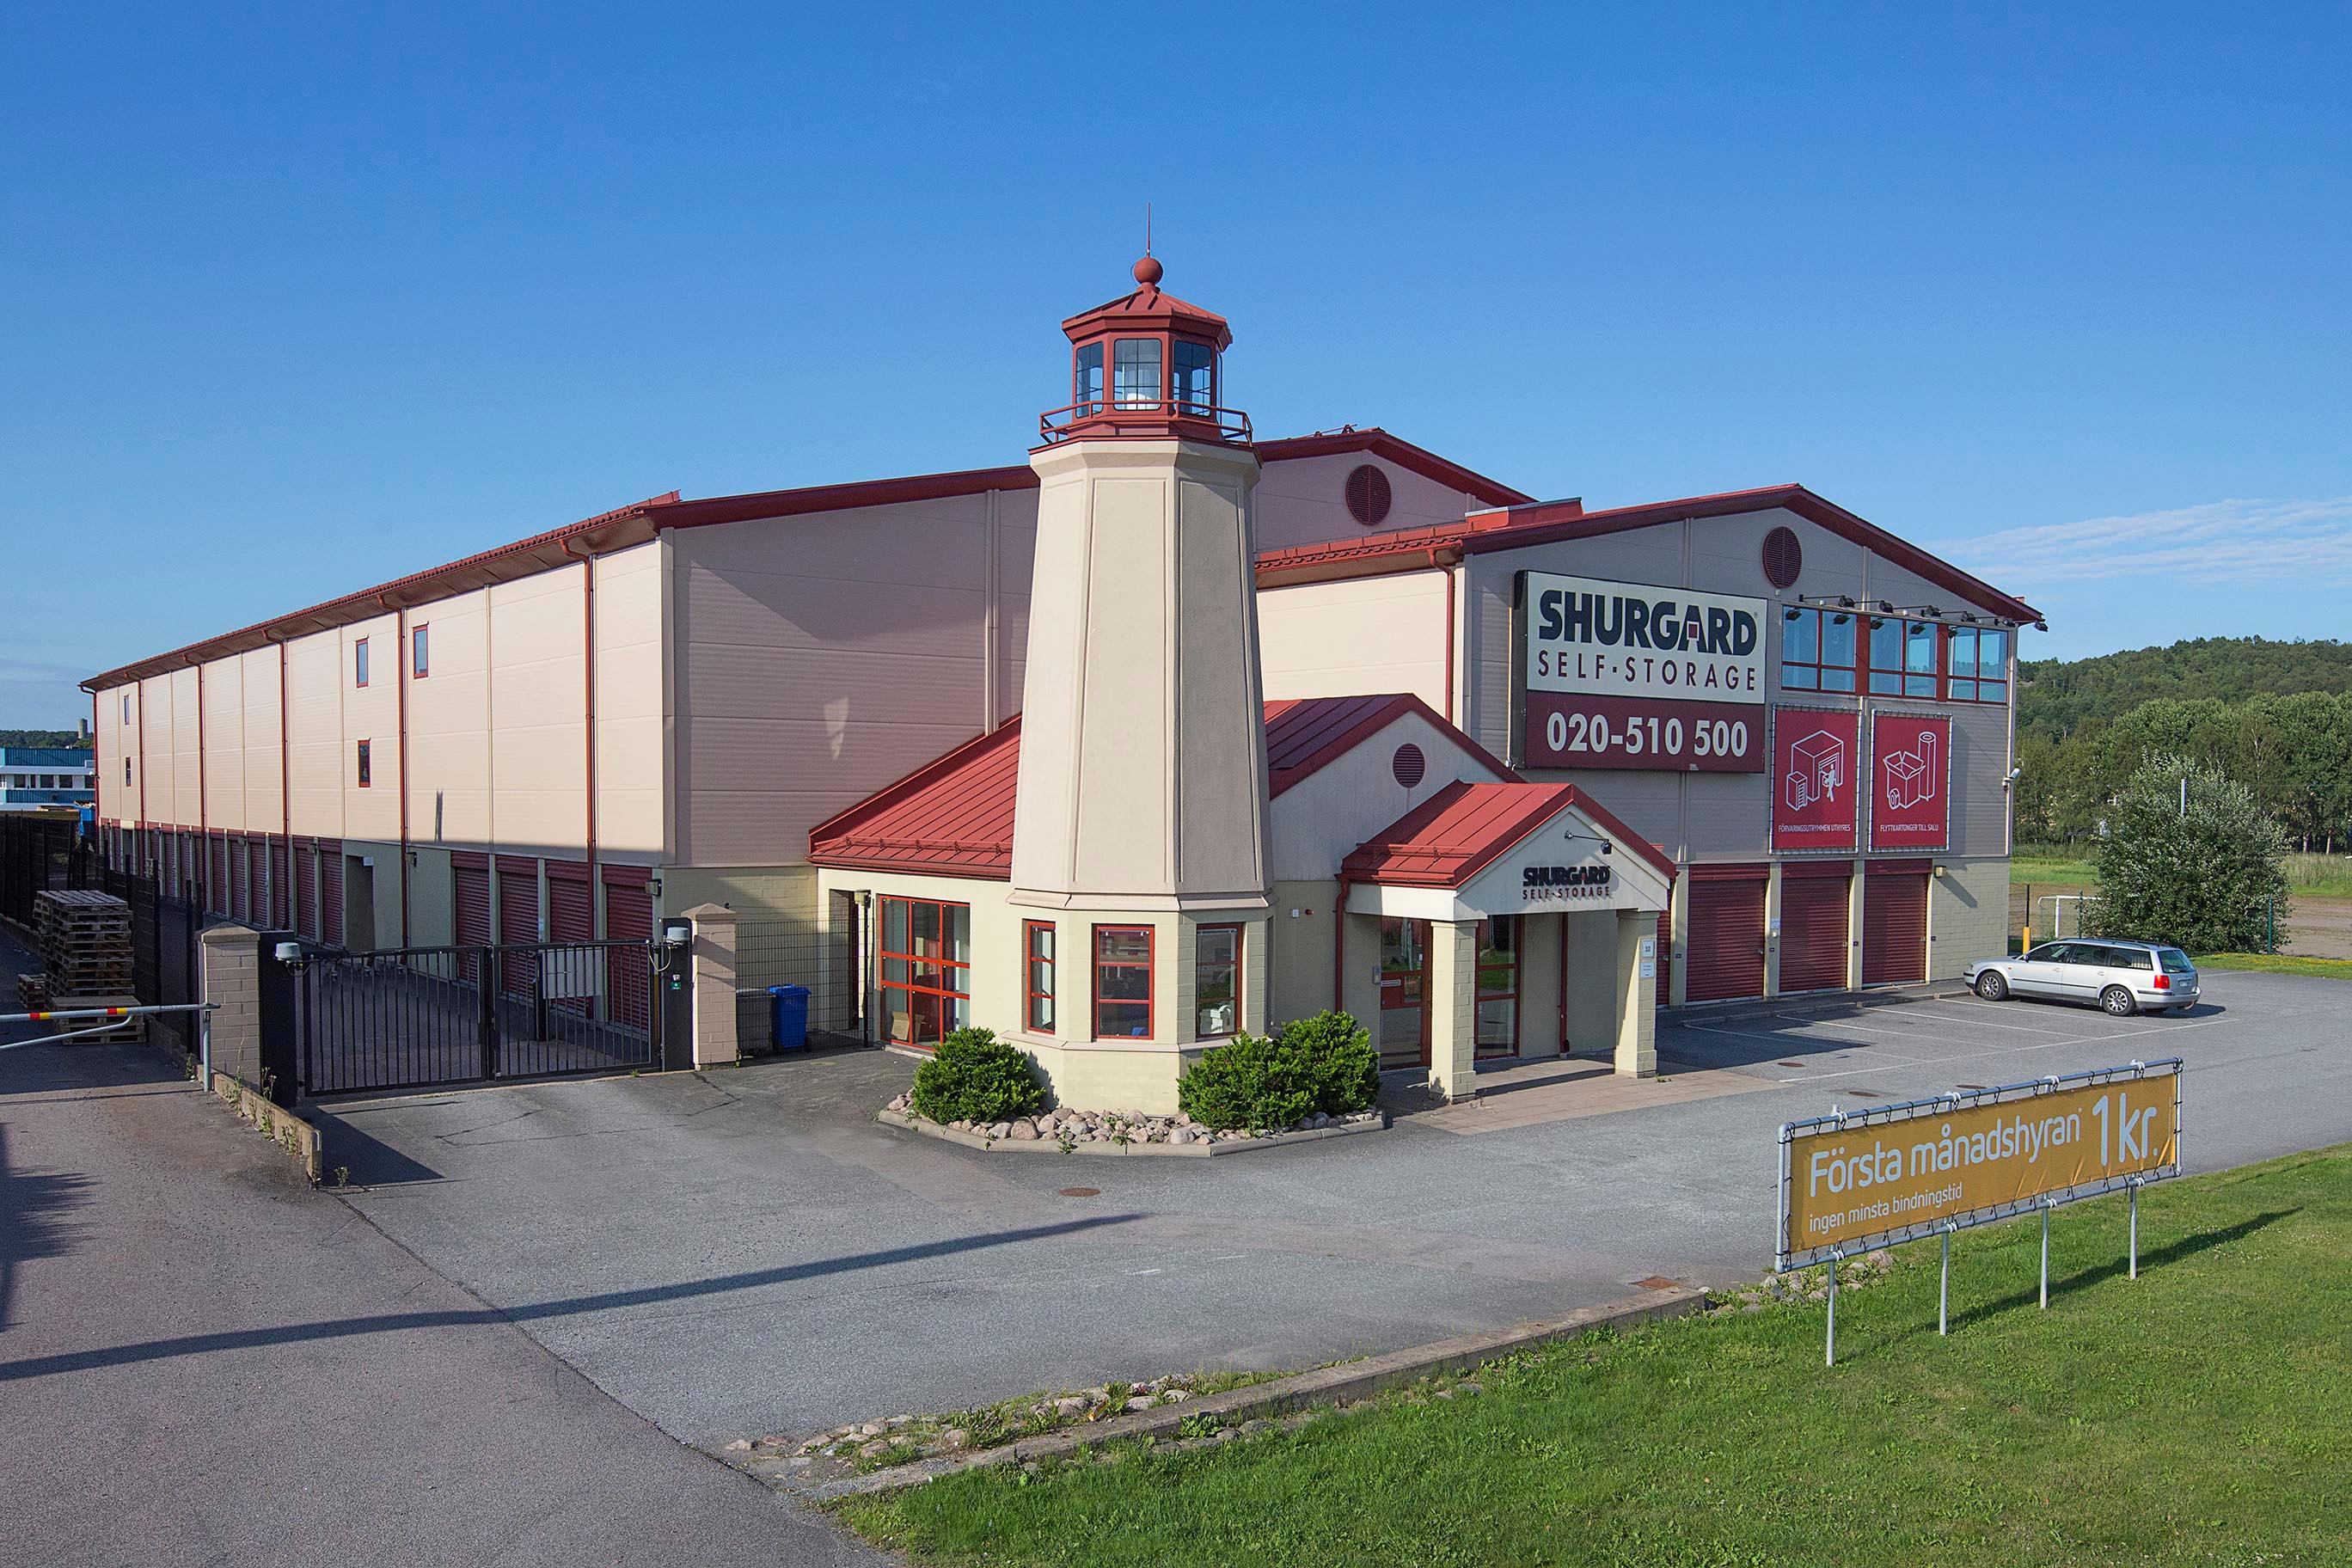 Shurgard Self-Storage Göteborg Backaplan